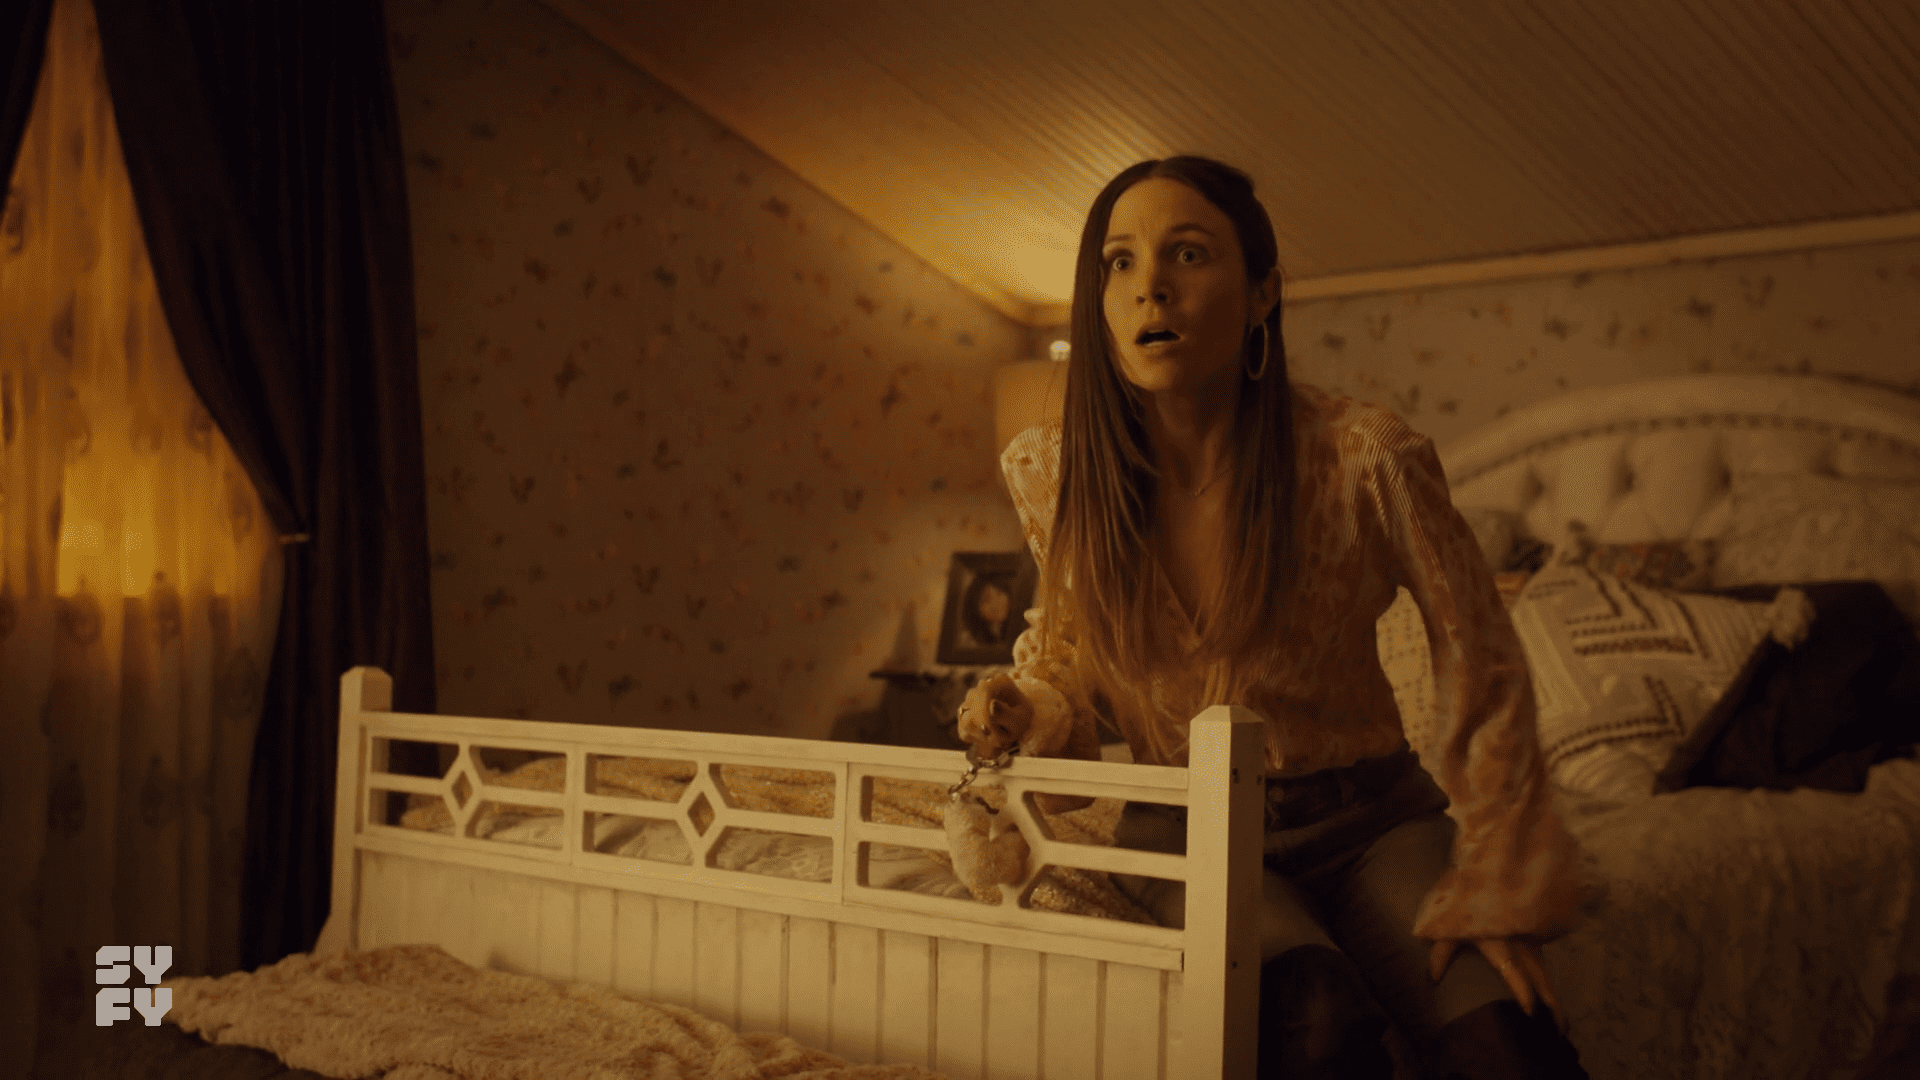 Waverly handcuffed to the bed, in a not fun way.